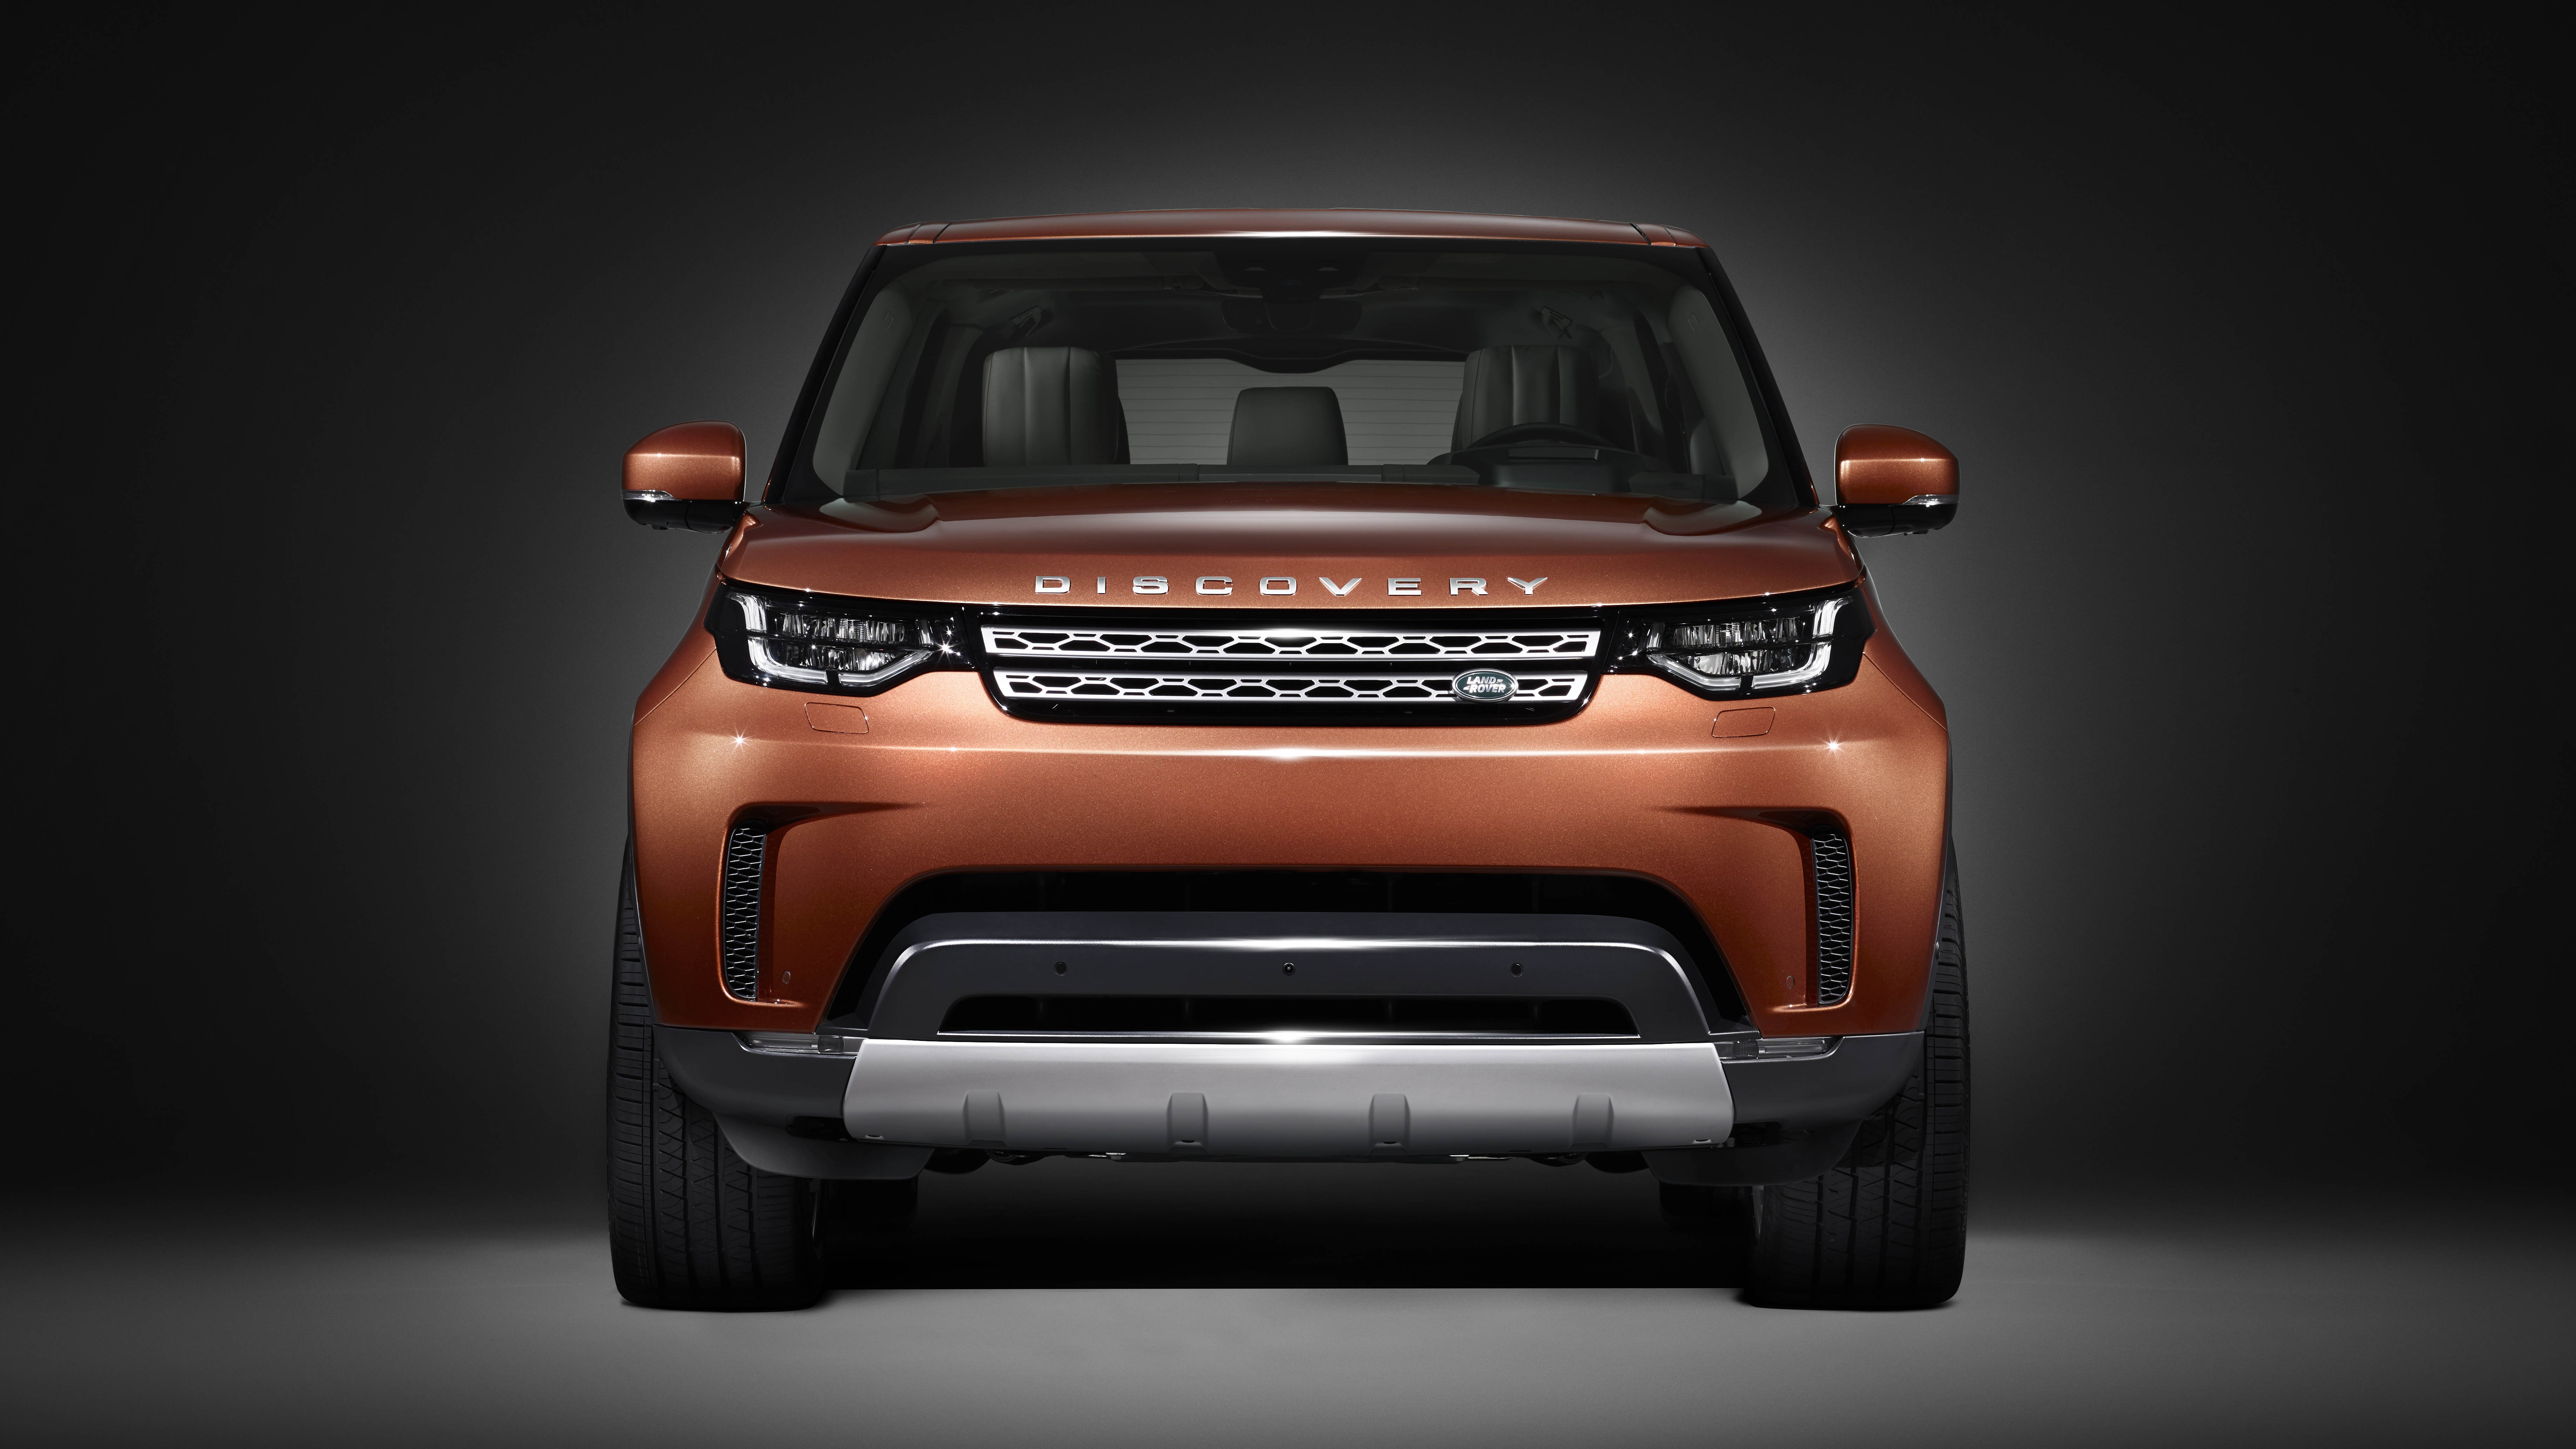 2017 Land Rover Discovery - visage